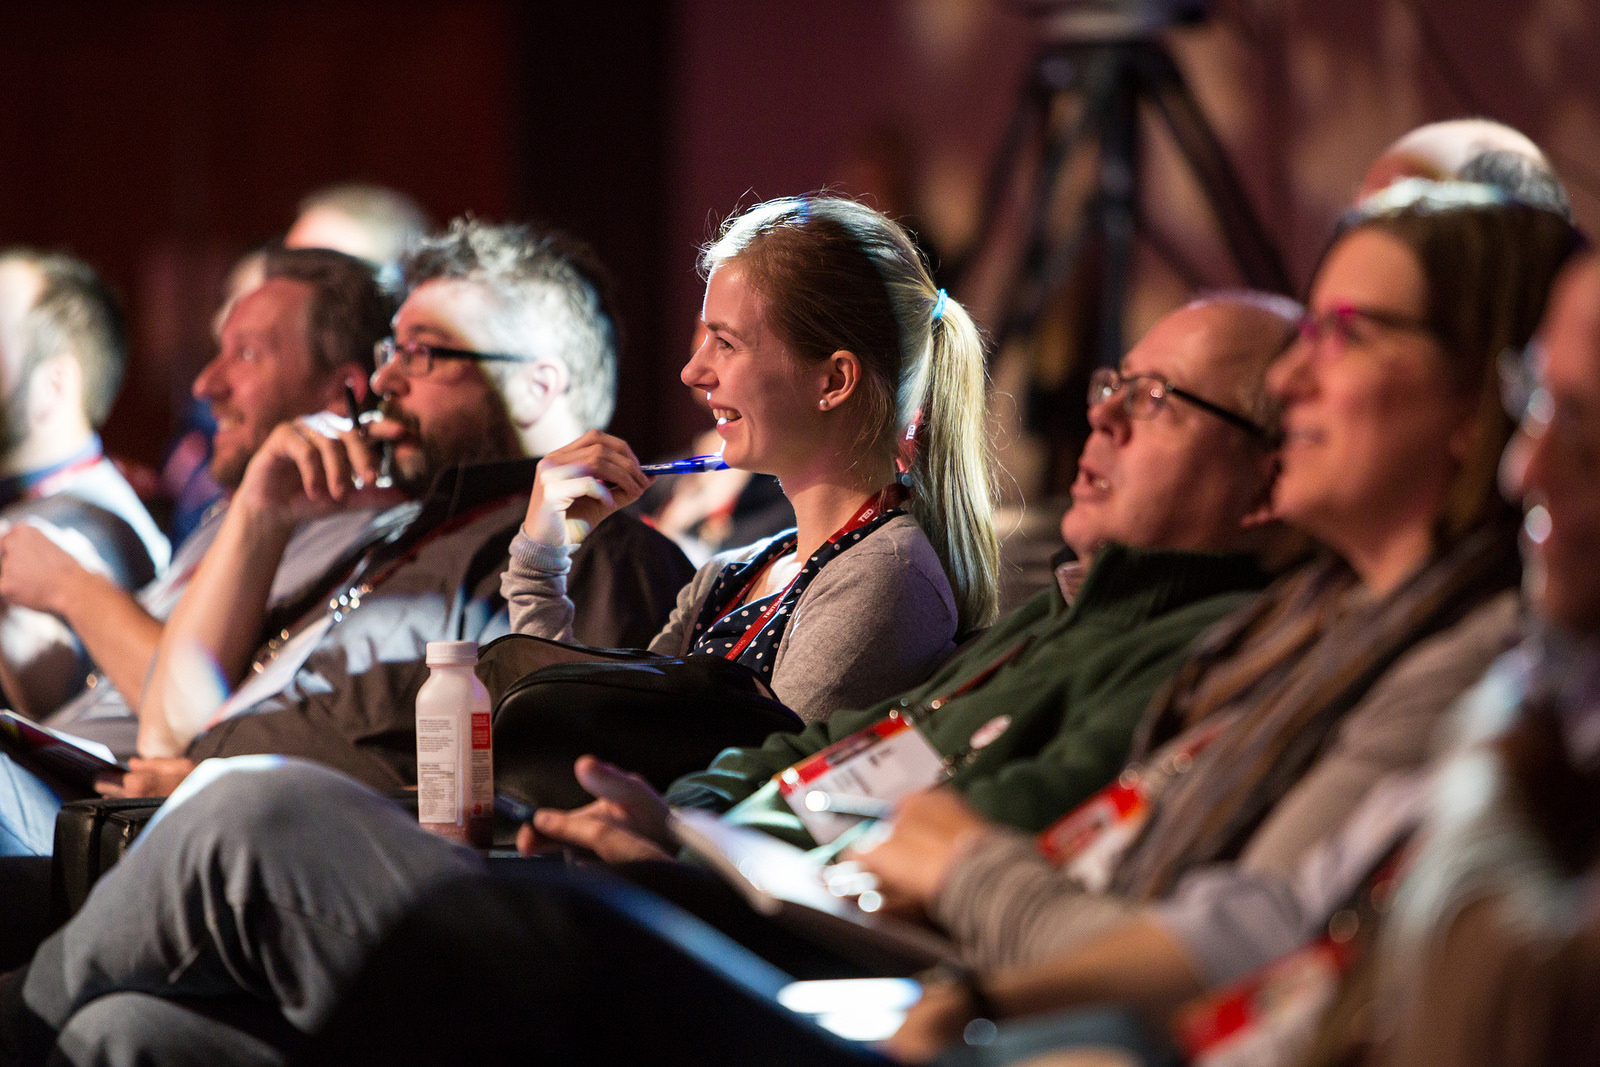 At TEDActive, attendees watch the conference program on bean bags, amidst a host of other activities. Photo: Marla Aufmuth/TED